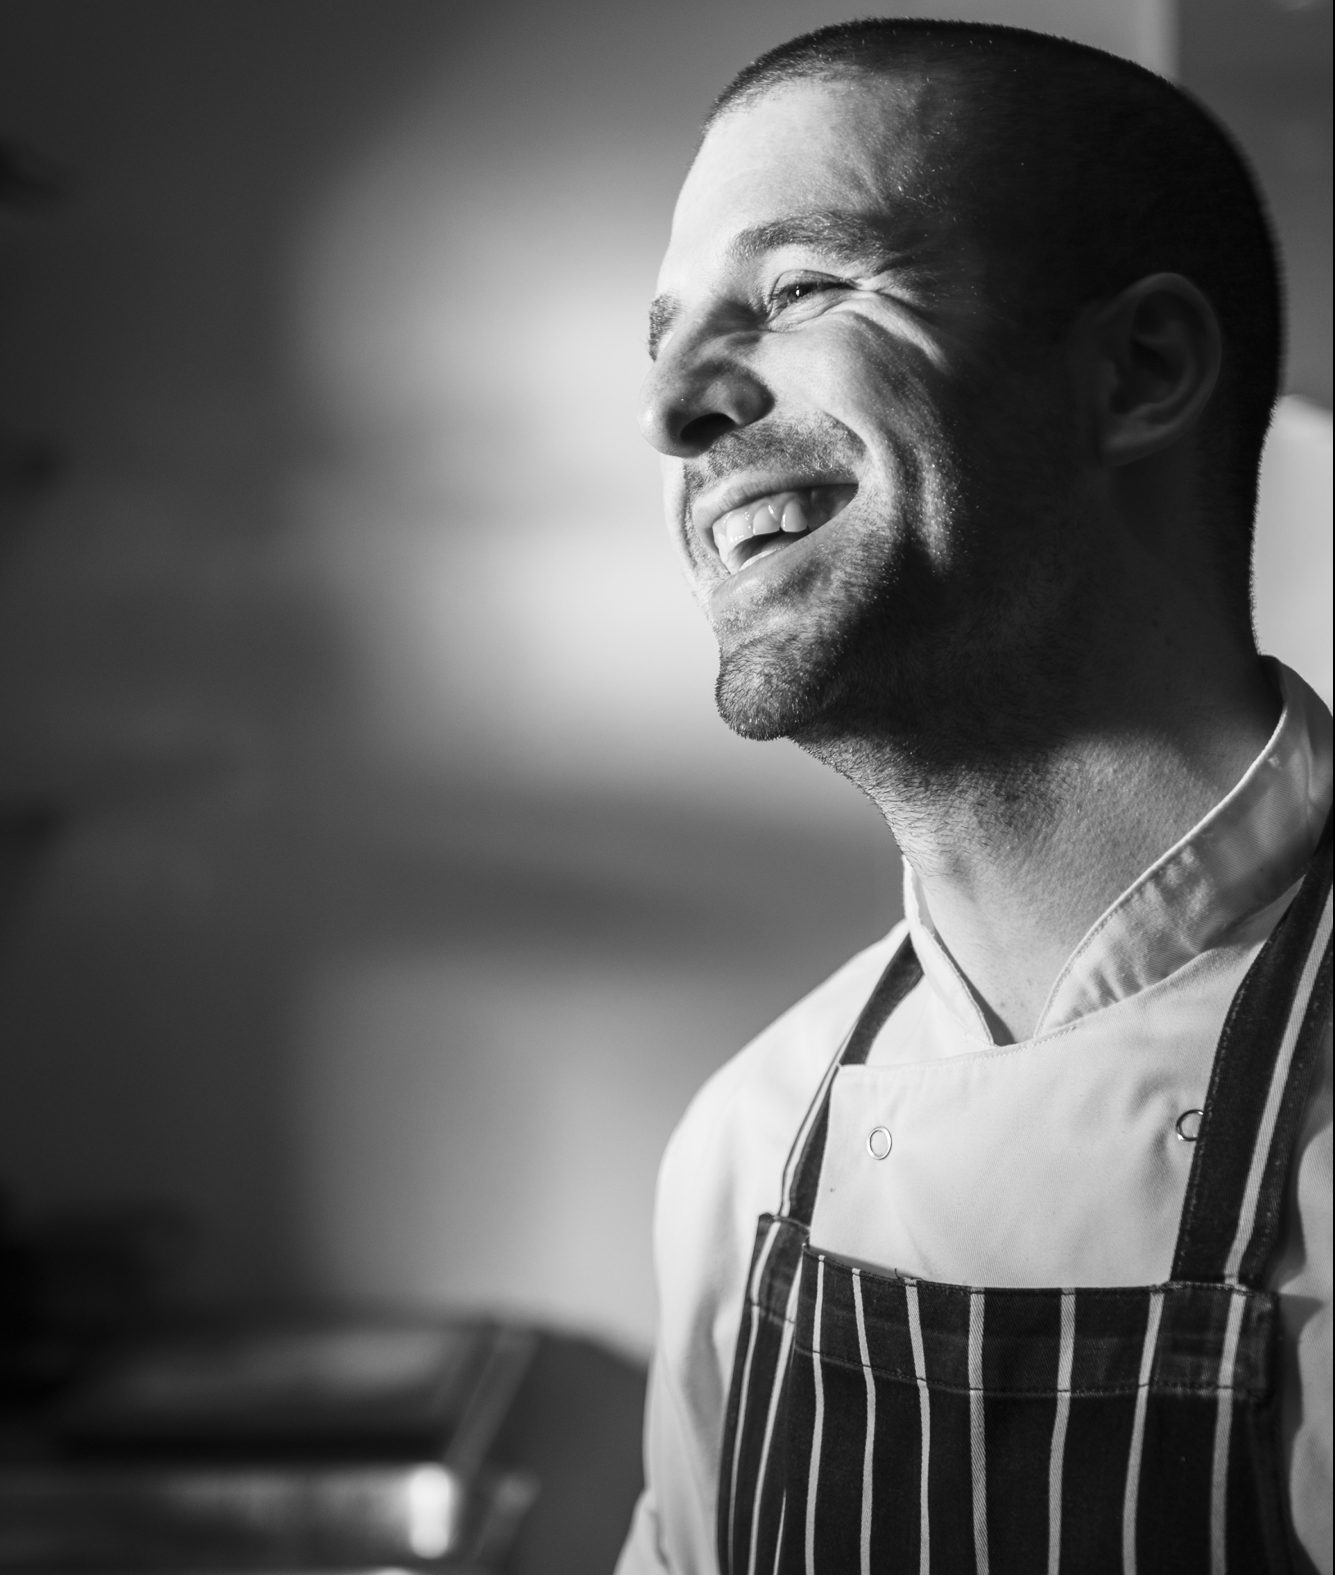 lawrence mccarthy head chef at salt room brighton